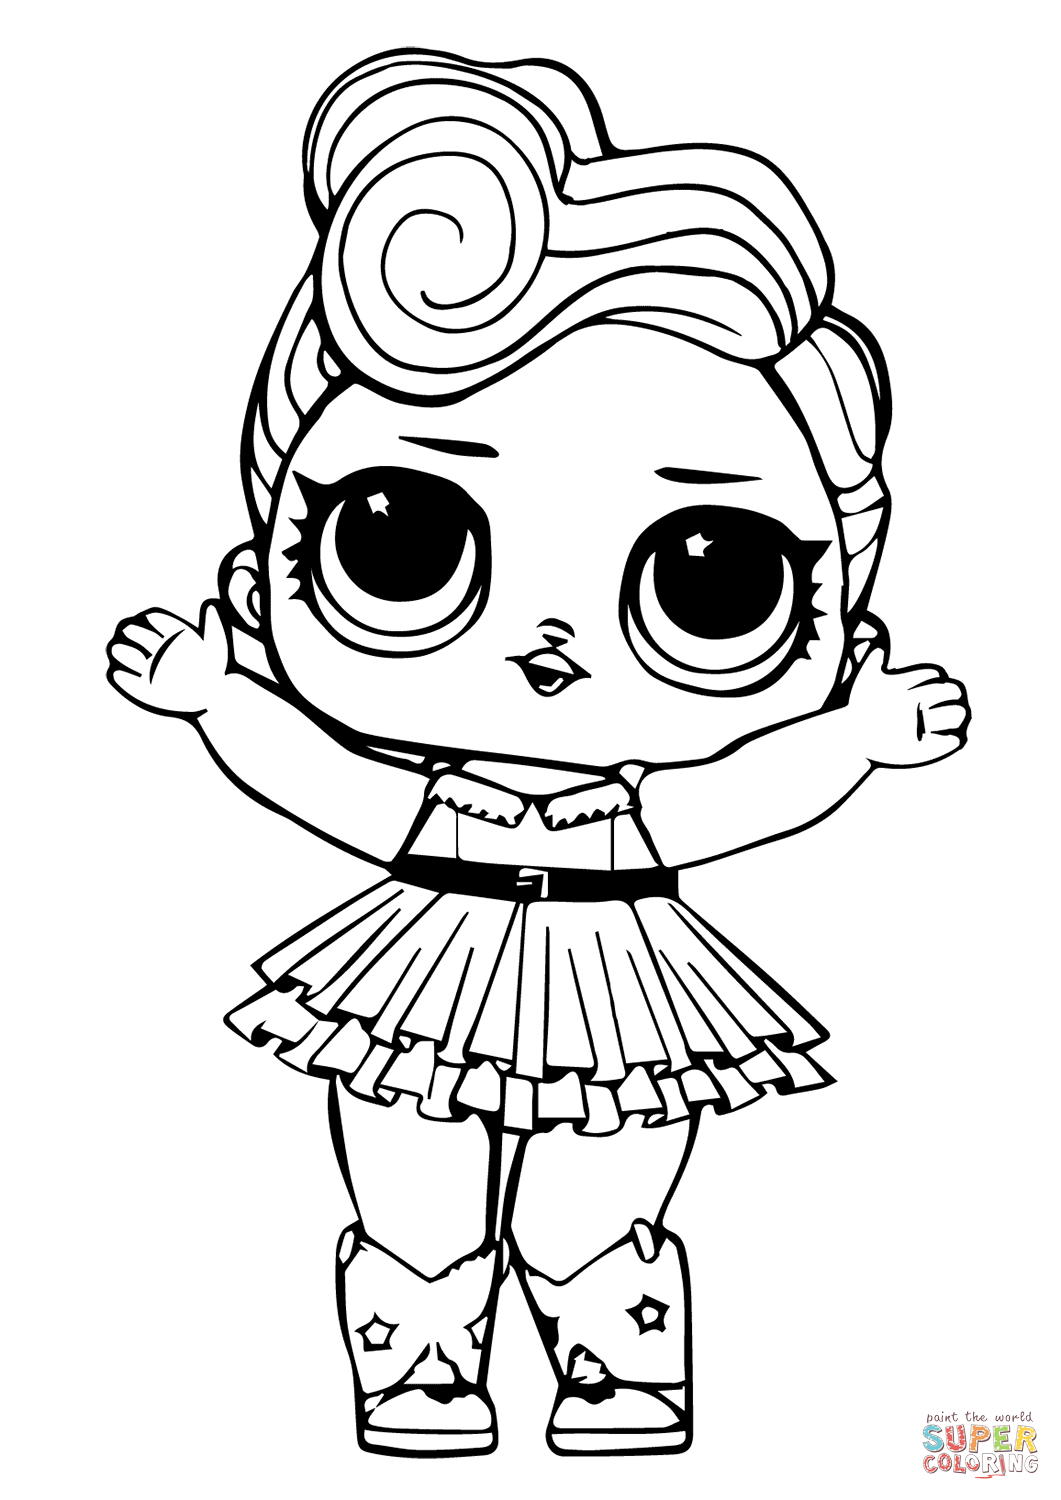 LOL Doll Luxe Coloring Page Free Printable Coloring Pages (With